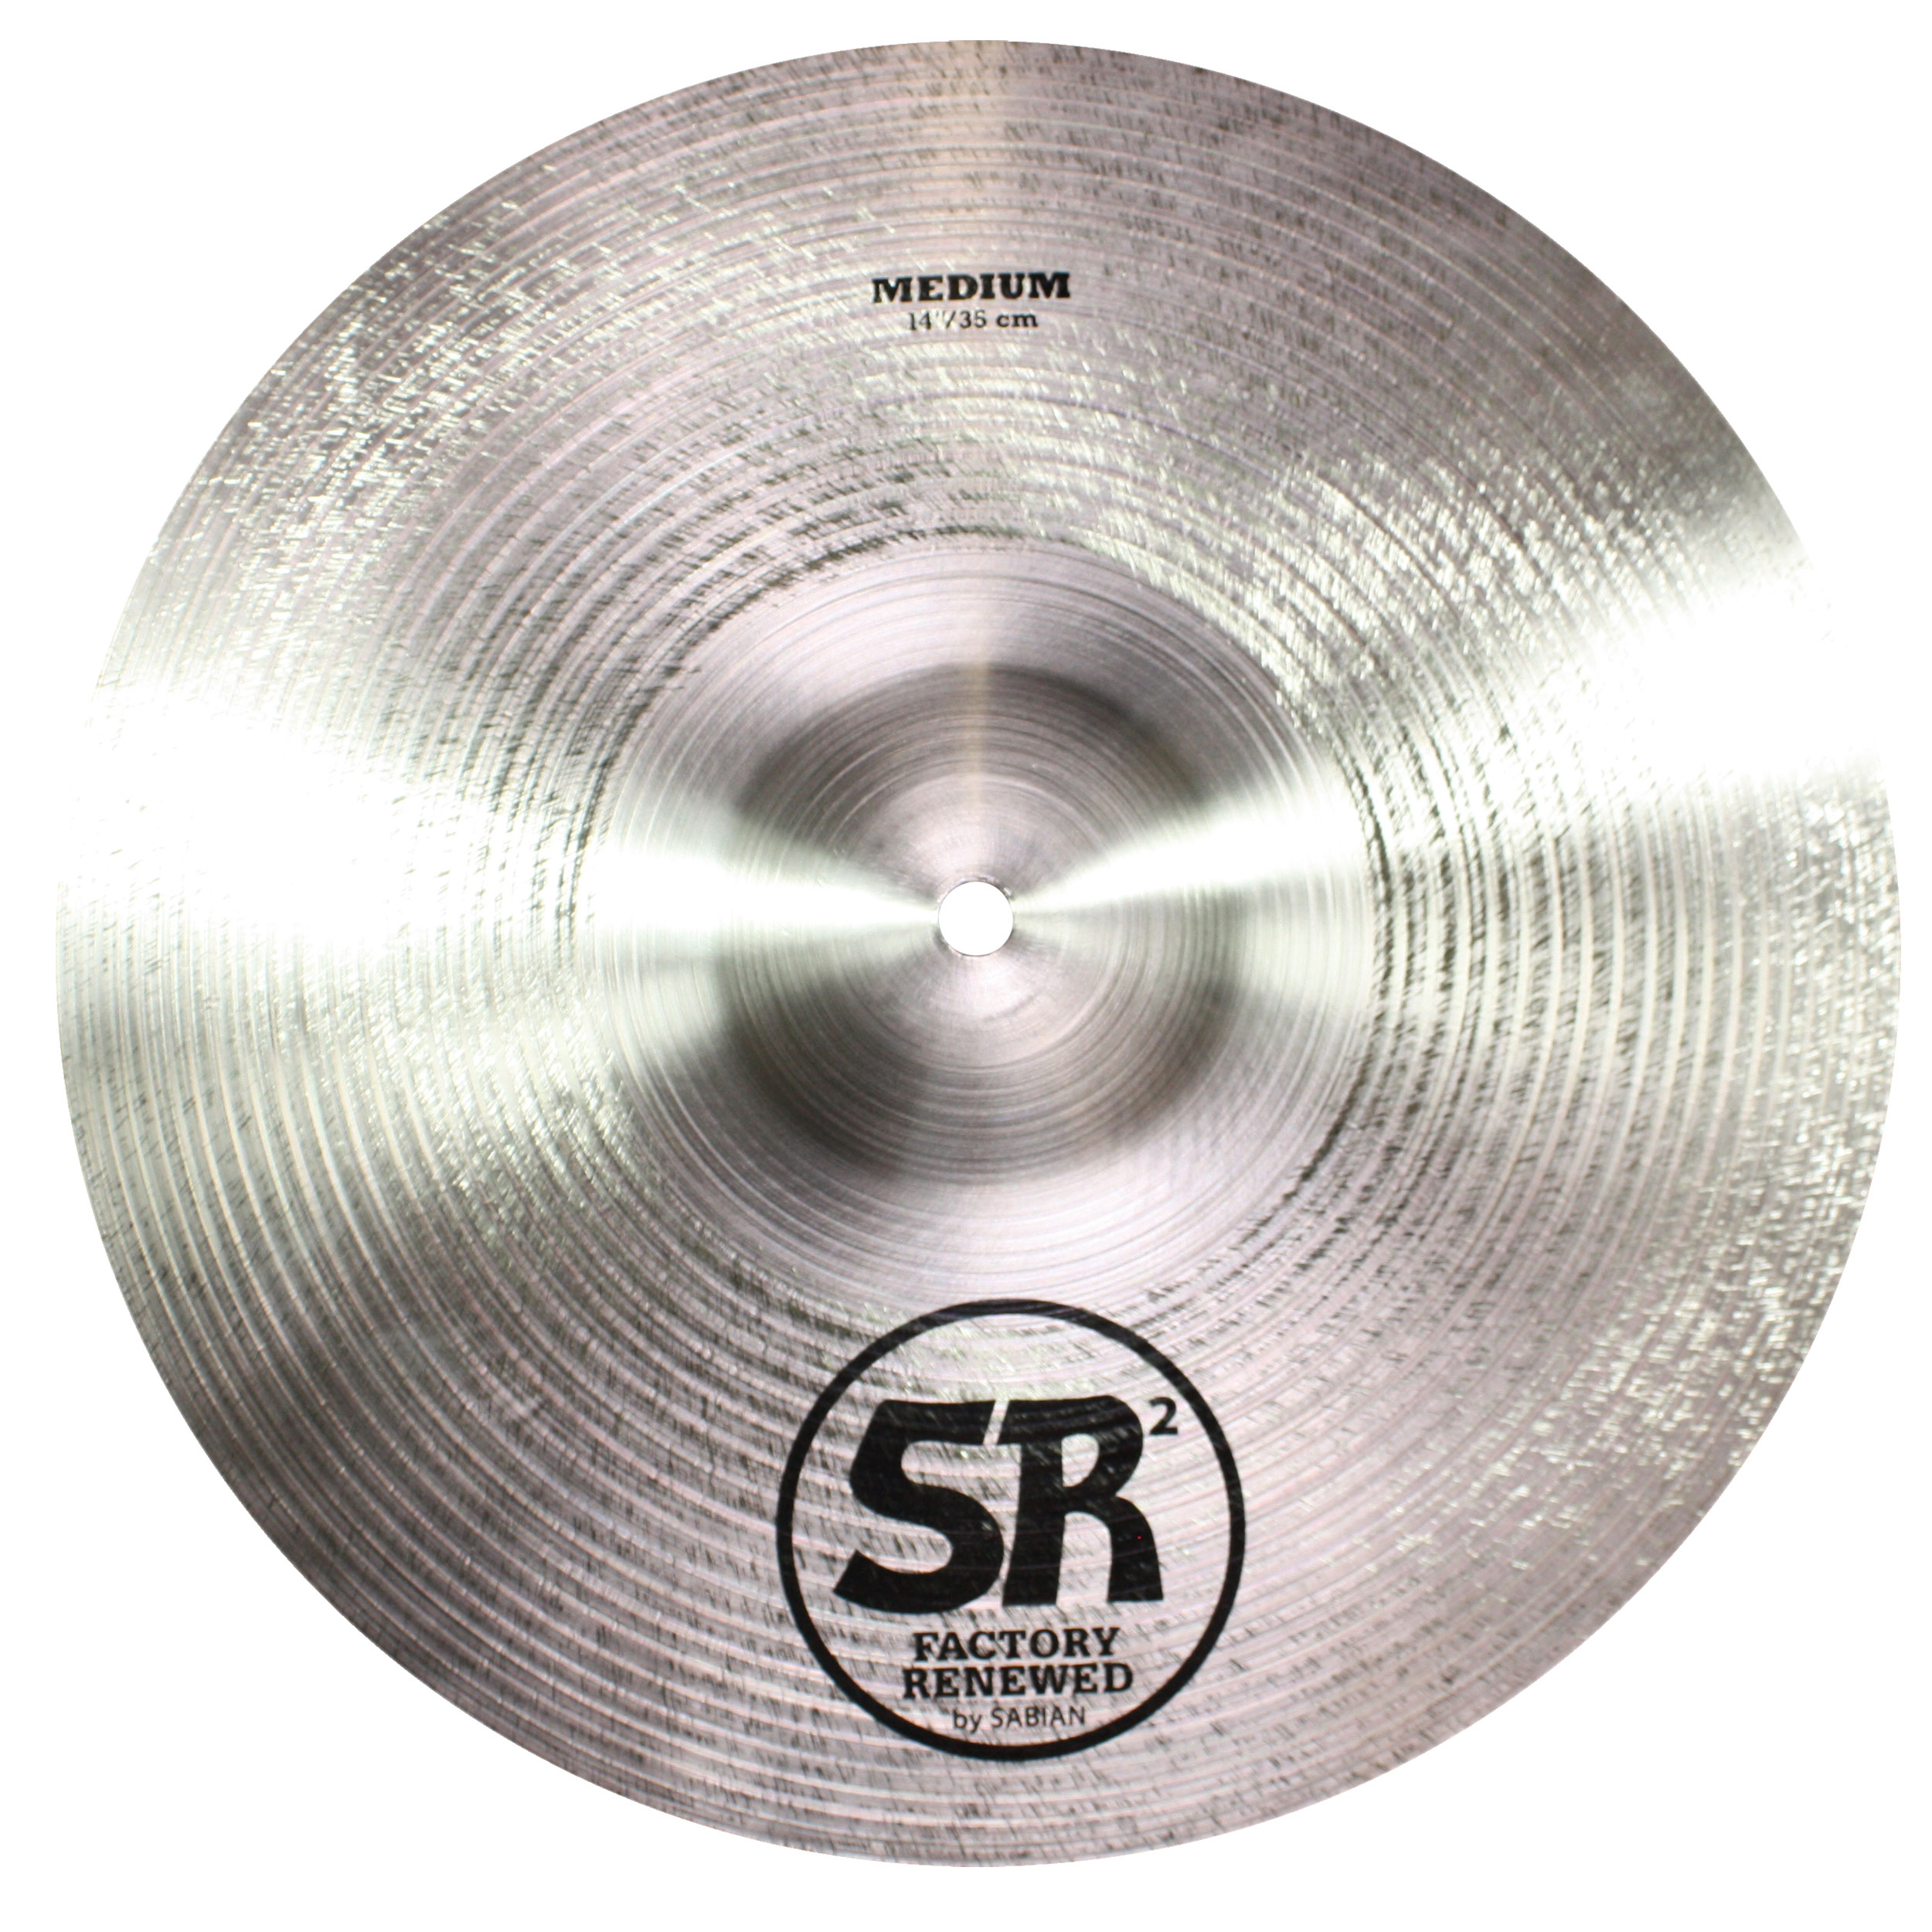 "Sabian 14"" SR2 Medium Cymbal"